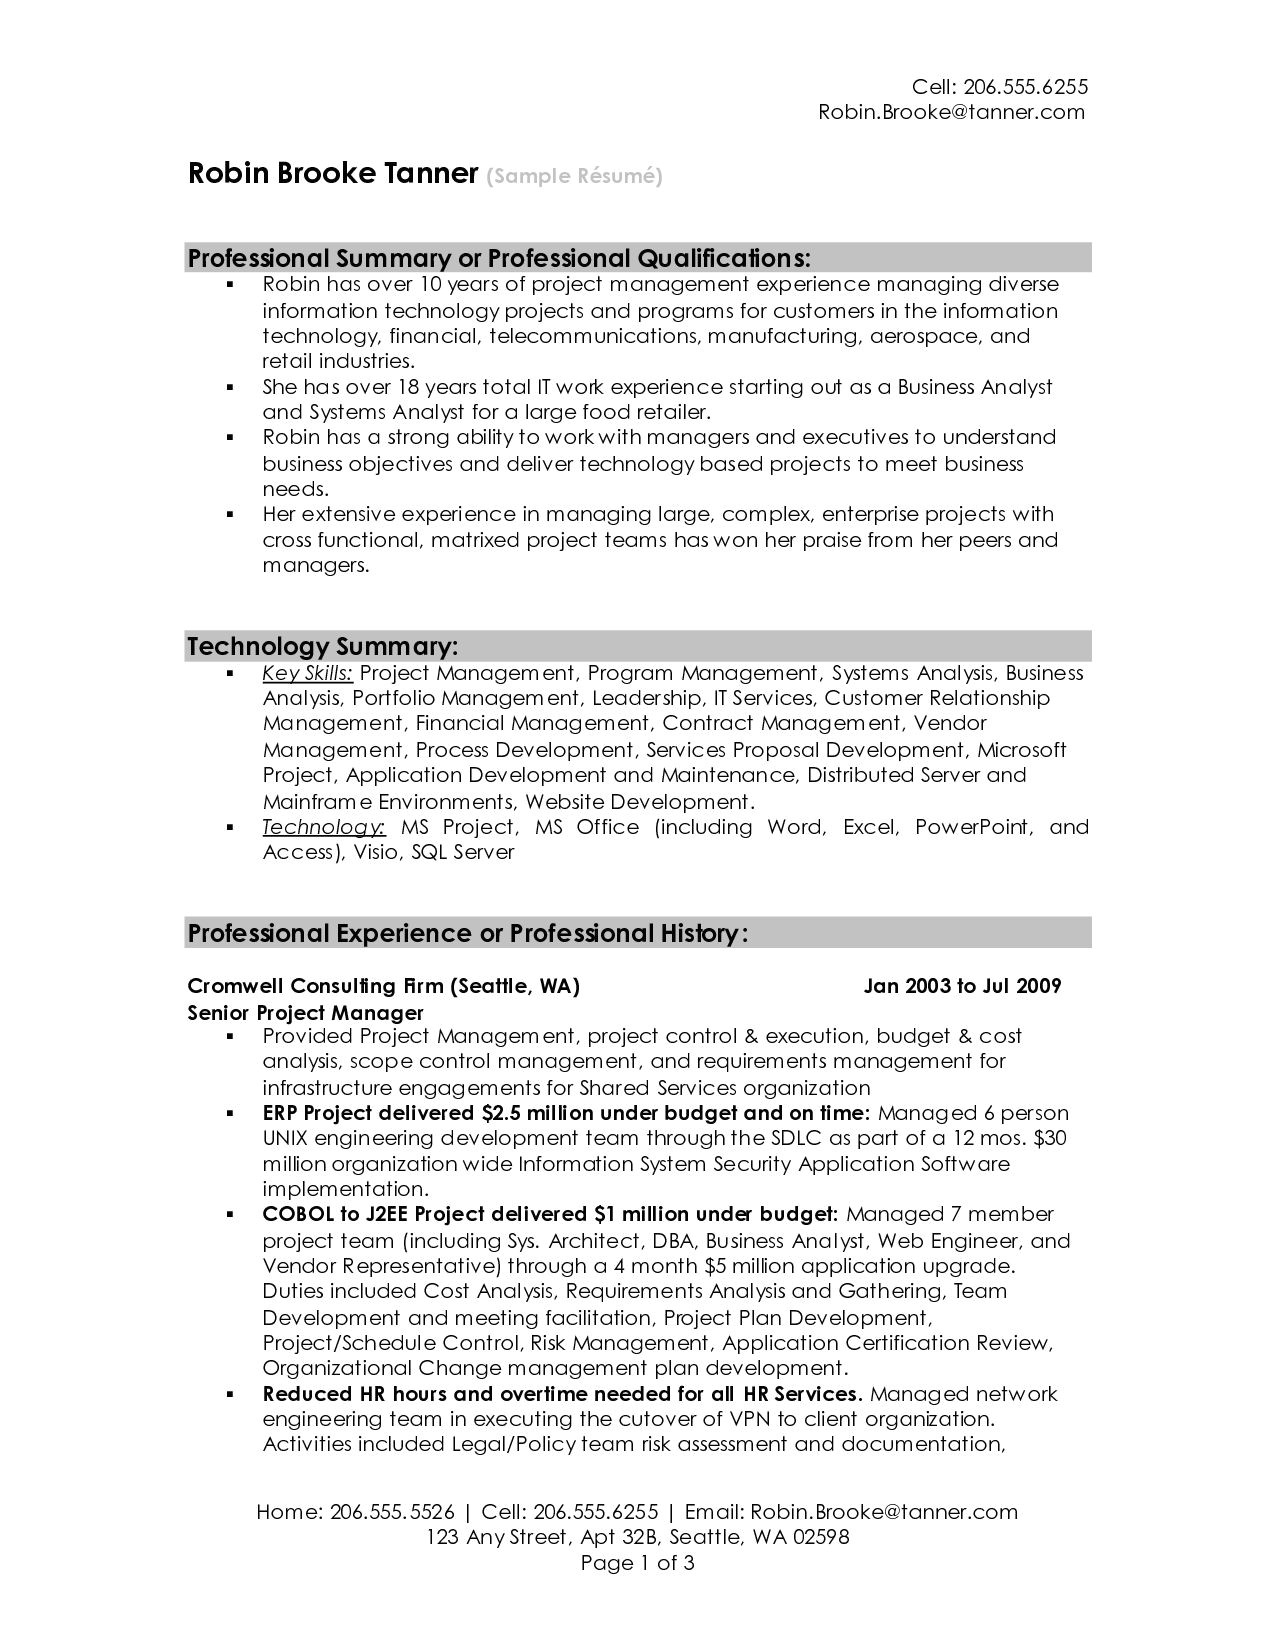 Professional Summary Resume Sample Professional Summary Resume Examples Professional Resume